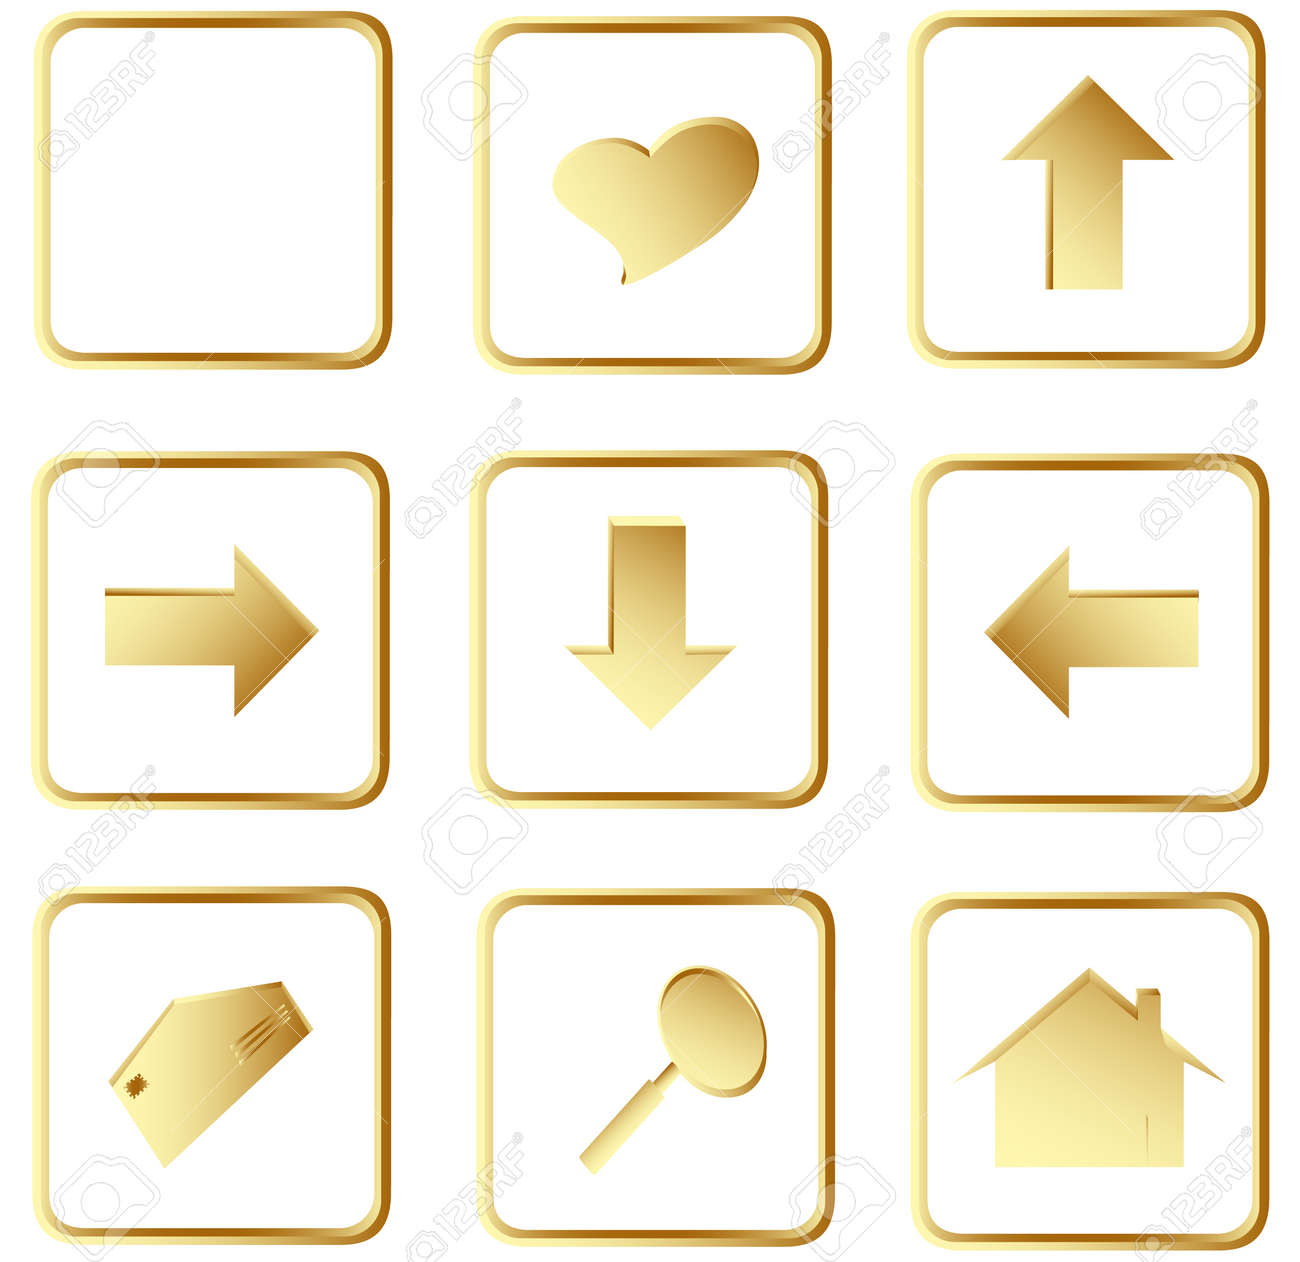 Illustration of the gold square web buttons Stock Vector - 4501178